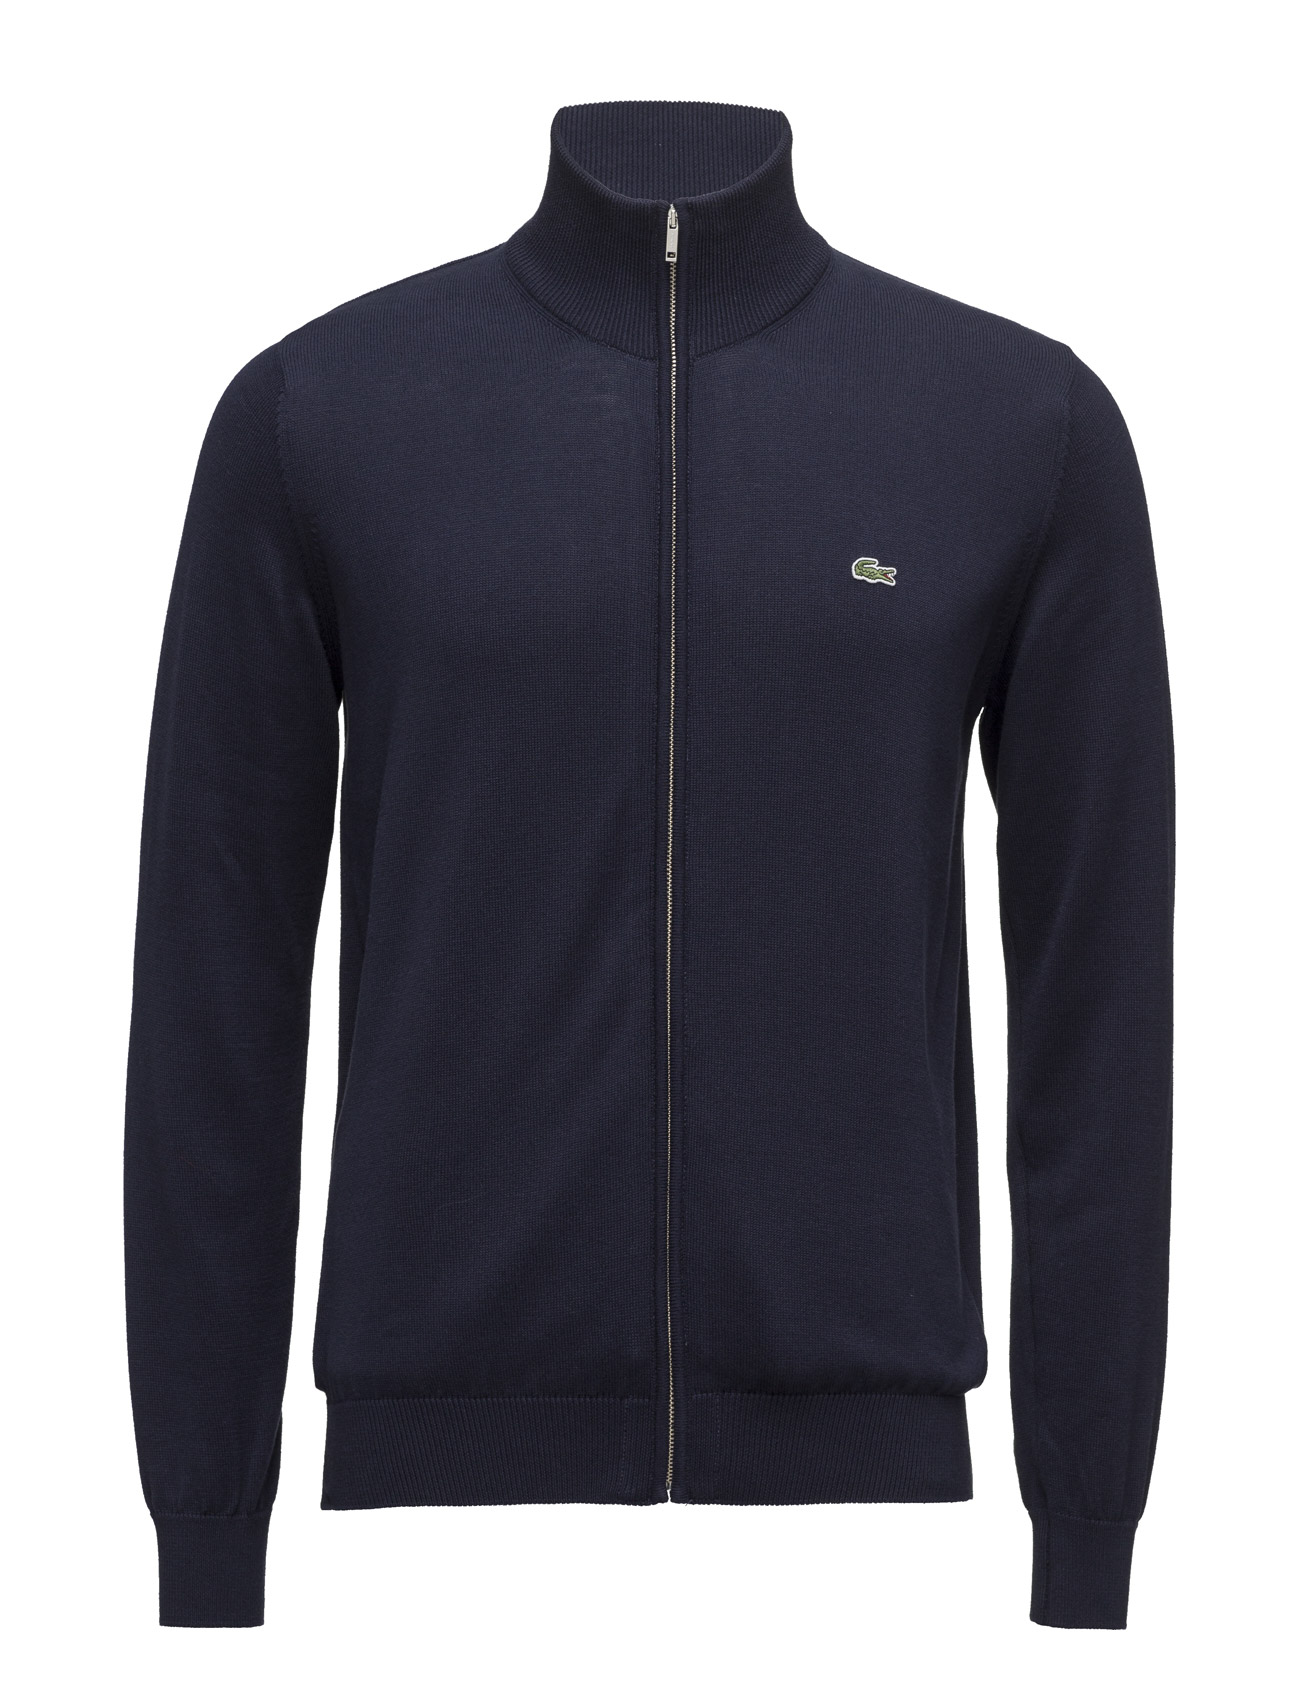 lacoste – Sweaters på boozt.com dk